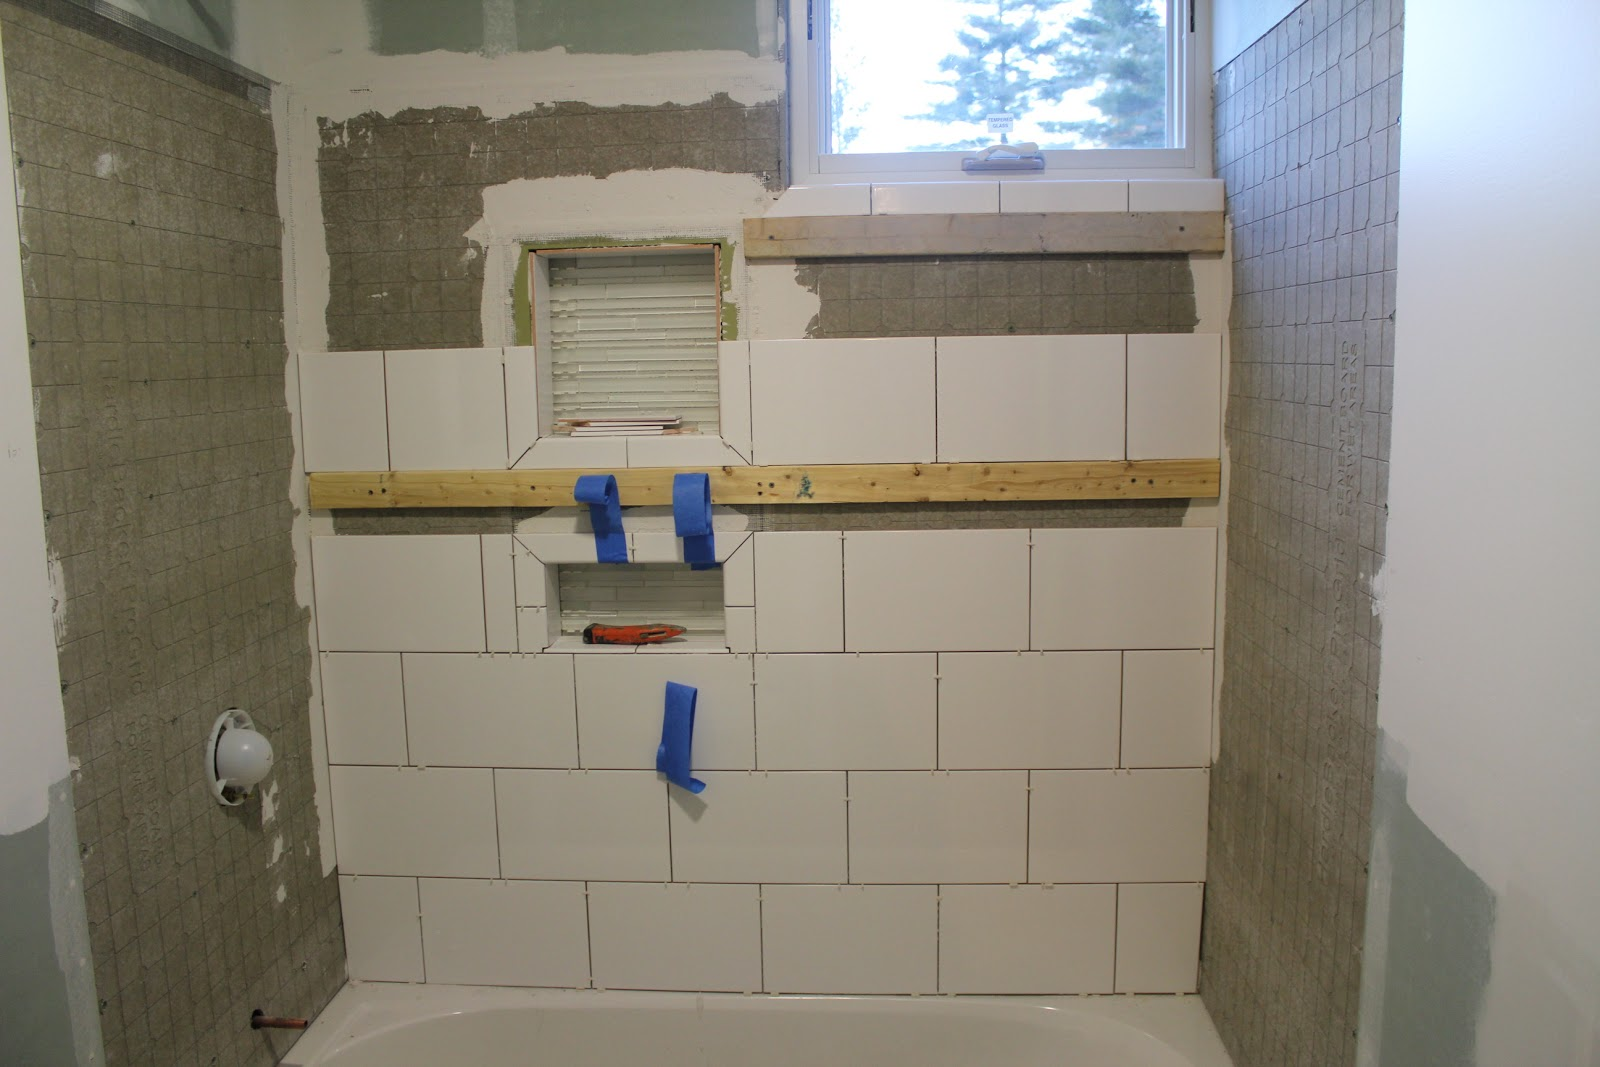 White Subway Tile Shower Niche 8 X12 Glossy Toilet Badkamer Doetinchem